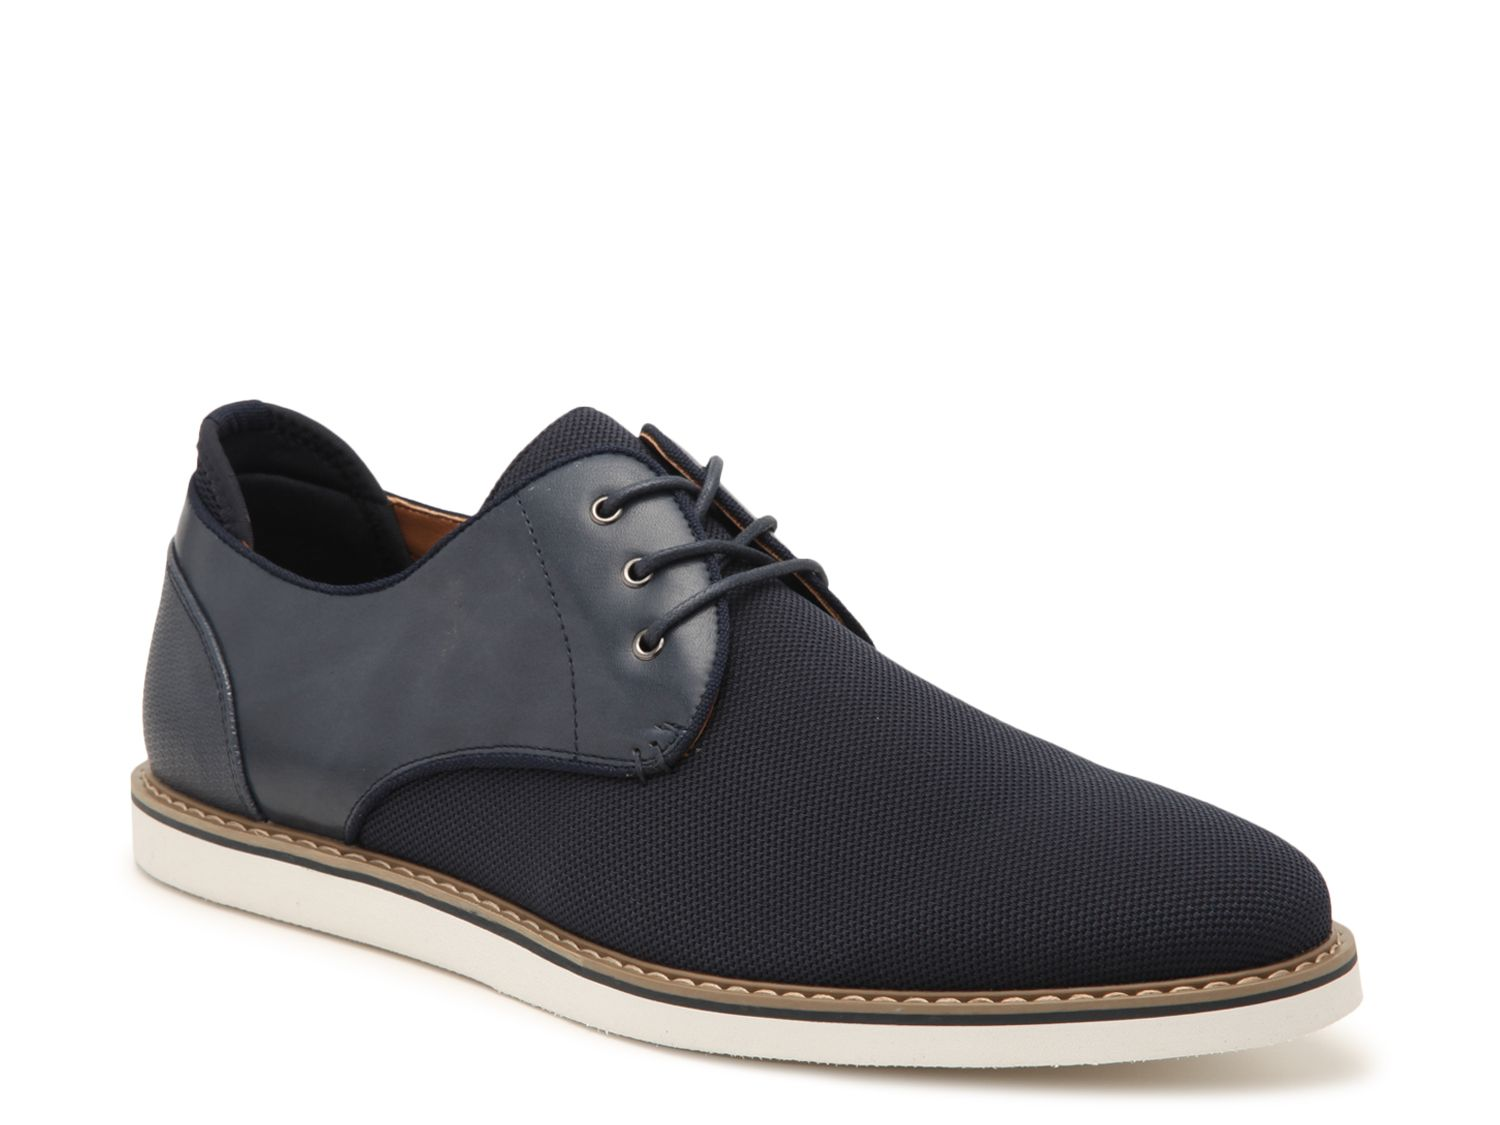 Seven 91 Duzce Oxford In 2021 Shoes With Jeans Business Casual Men Oxford [ 1125 x 1500 Pixel ]